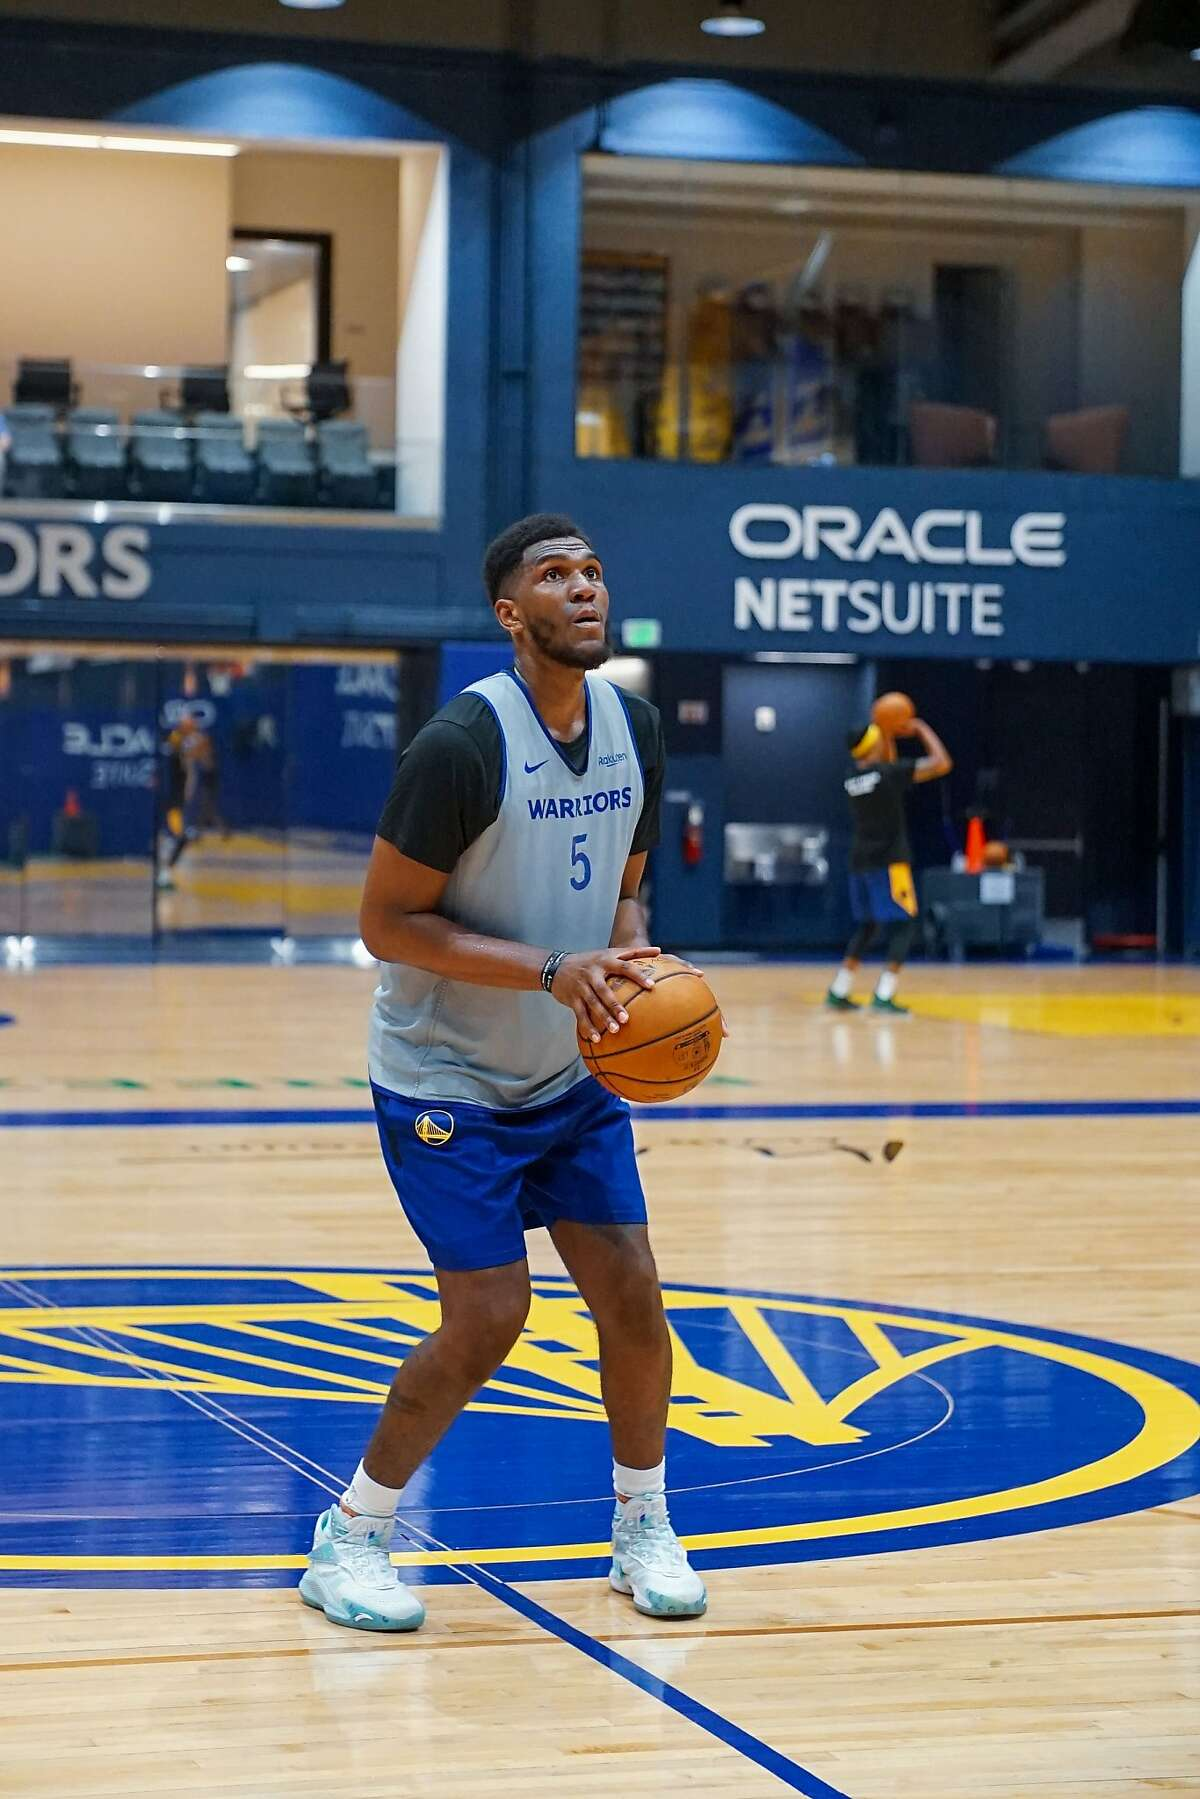 Warriors center Kevon Looney has been his old self during the first two days of minicamp.